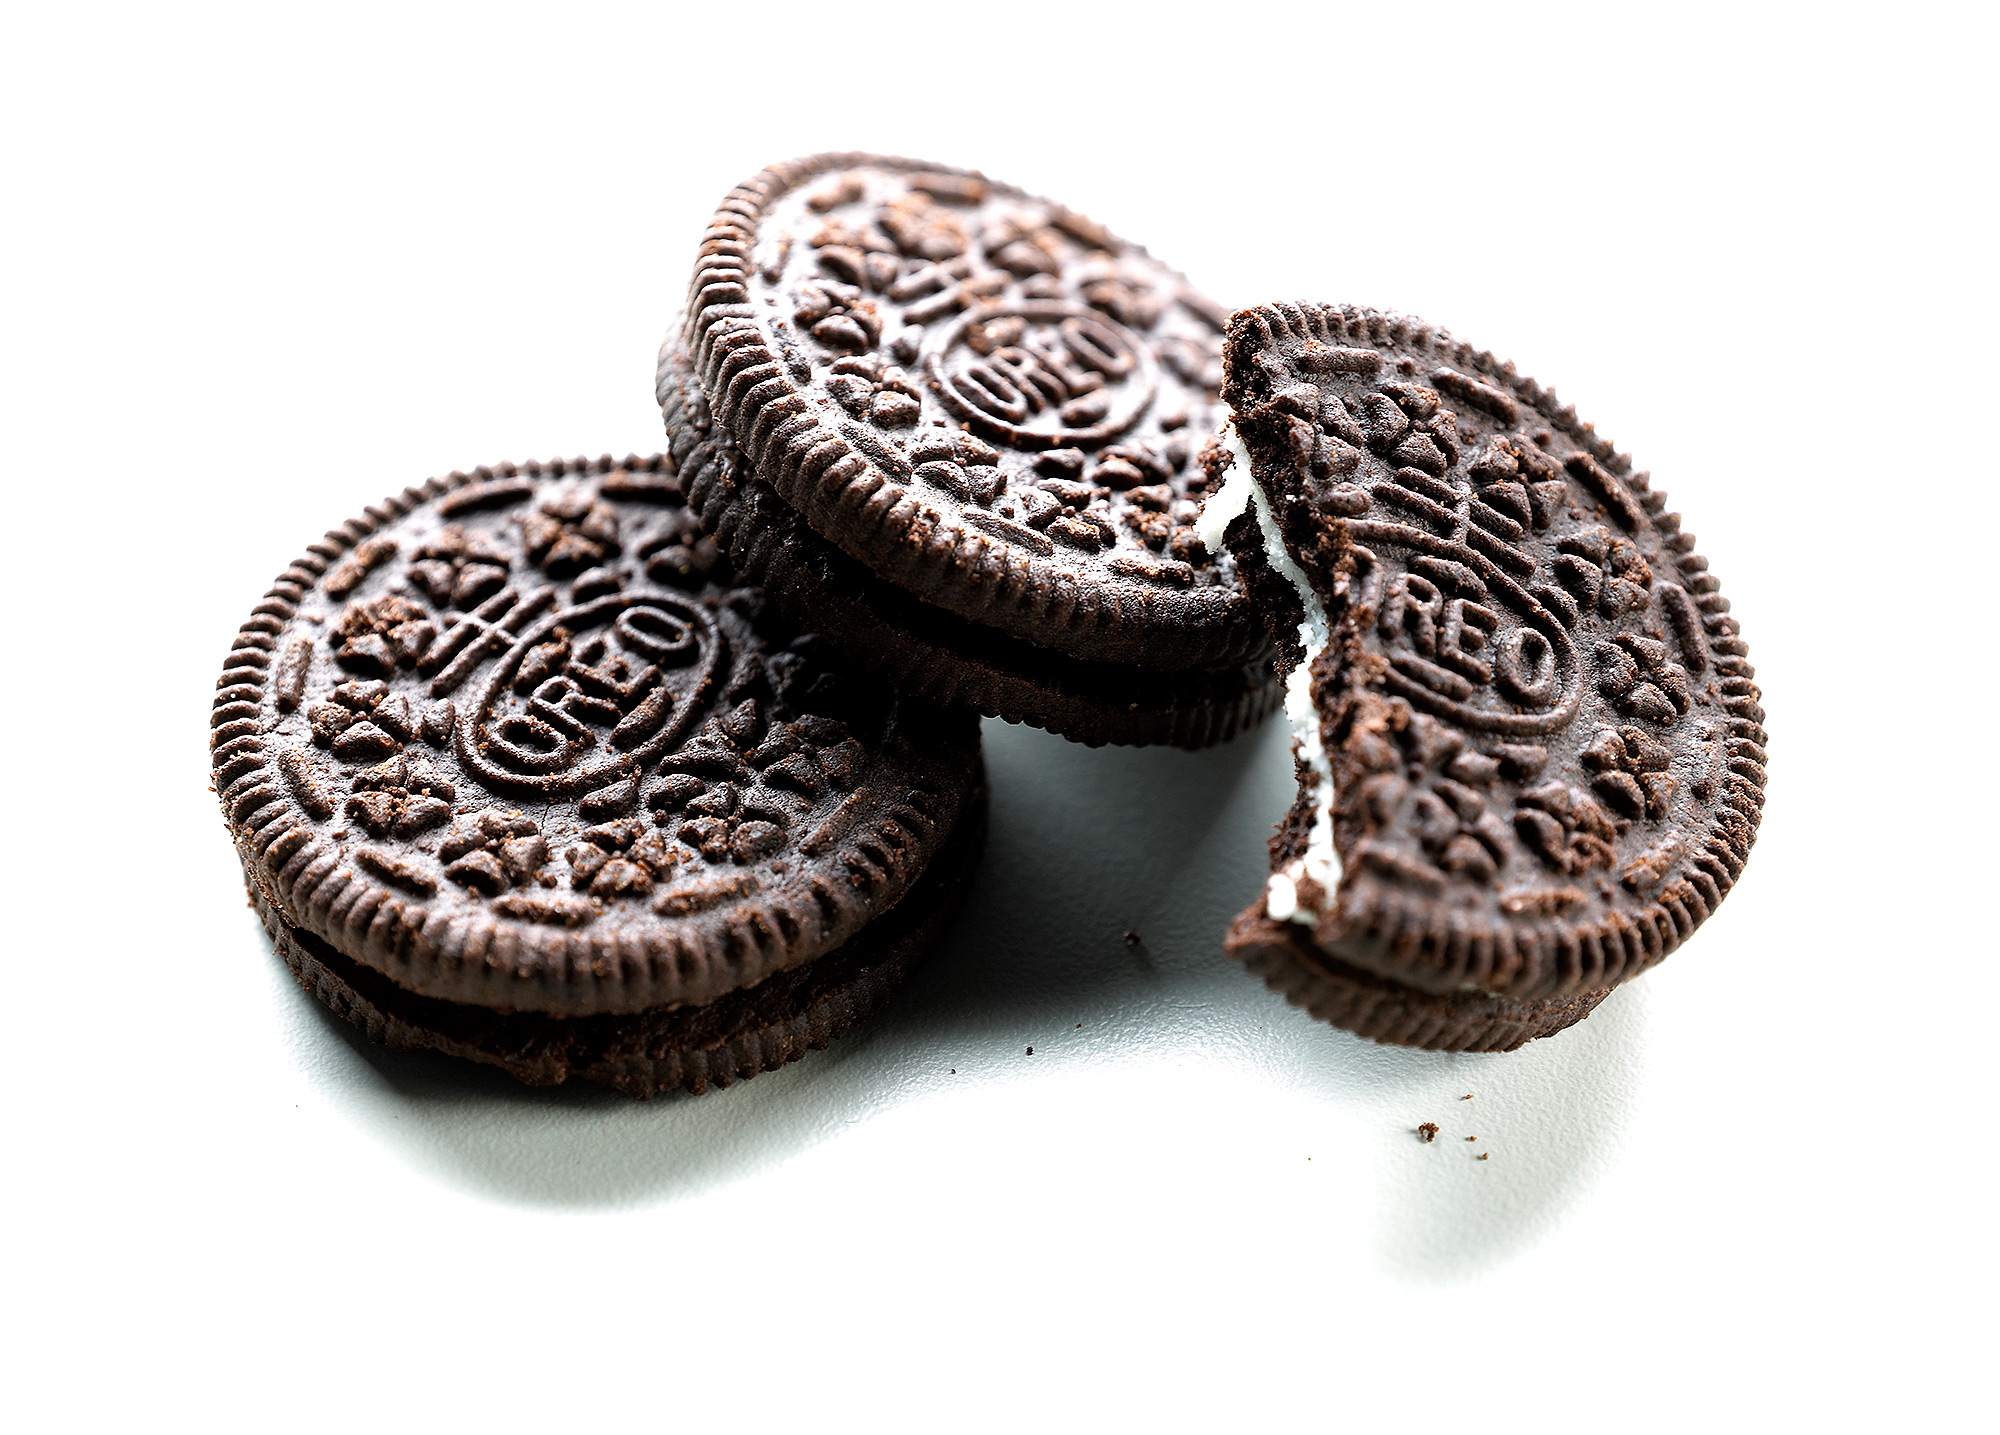 It's True! Oreo Is Officially Releasing Their Biggest Cookie Ever with 'Most Stuf Oreos'